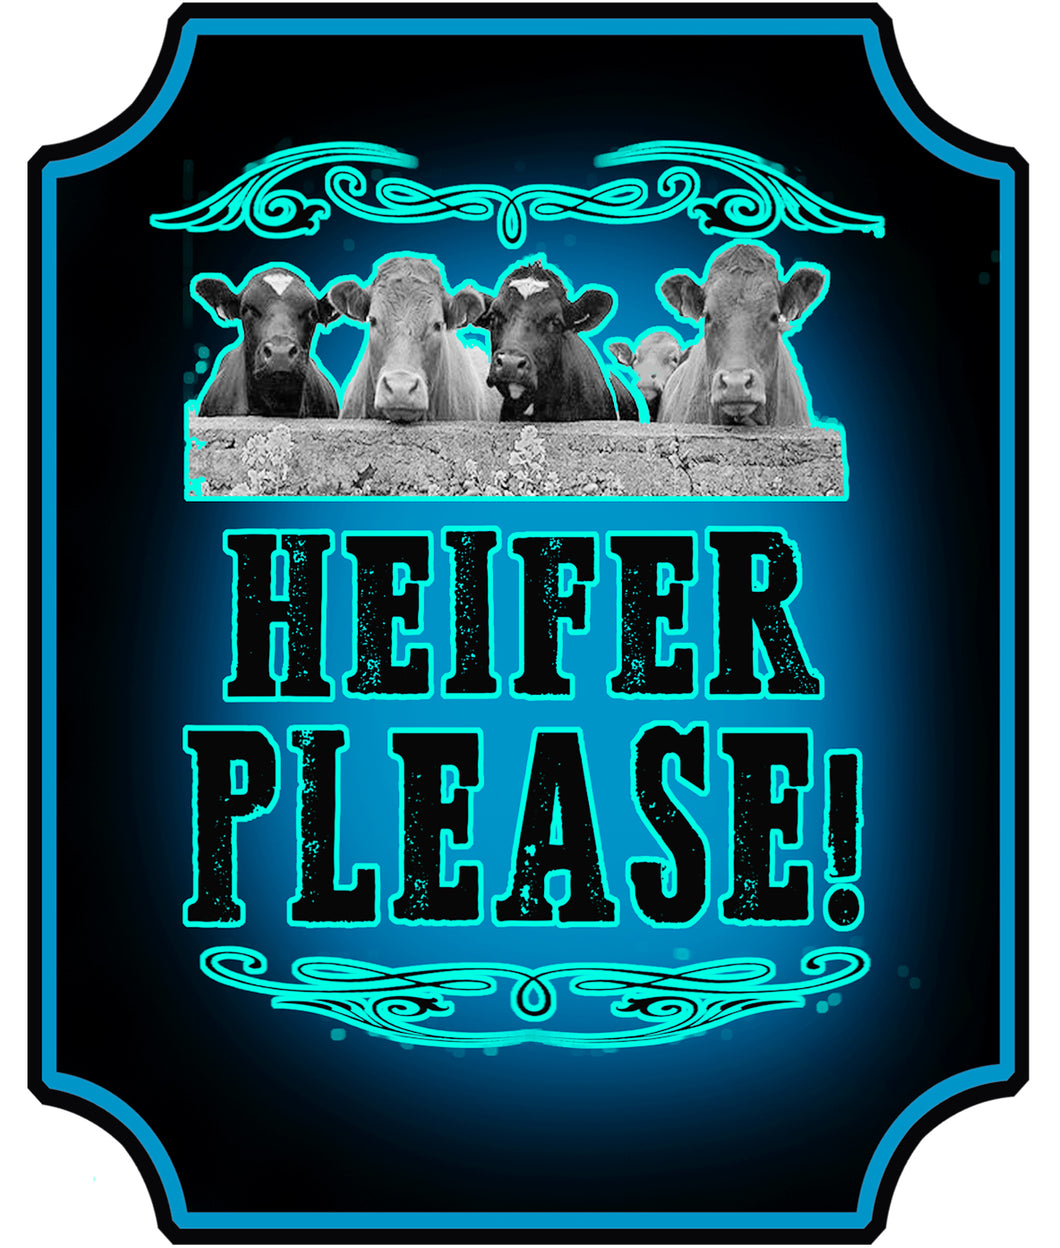 Heifer Please Decal